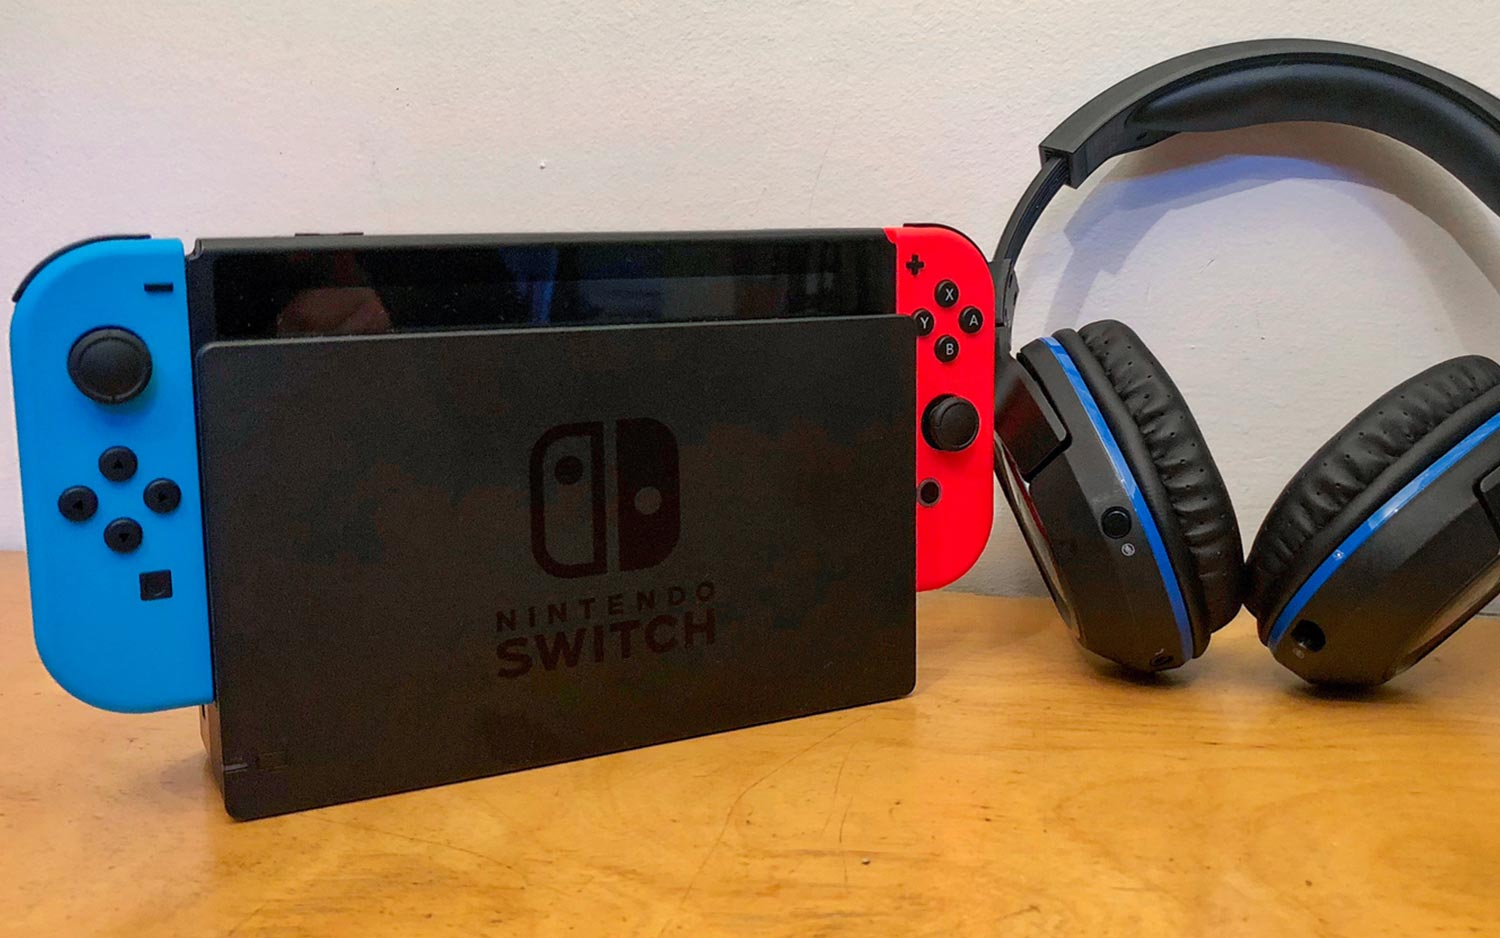 How To Connect Bluetooth Headphones To A Nintendo Switch Via The USB-C?